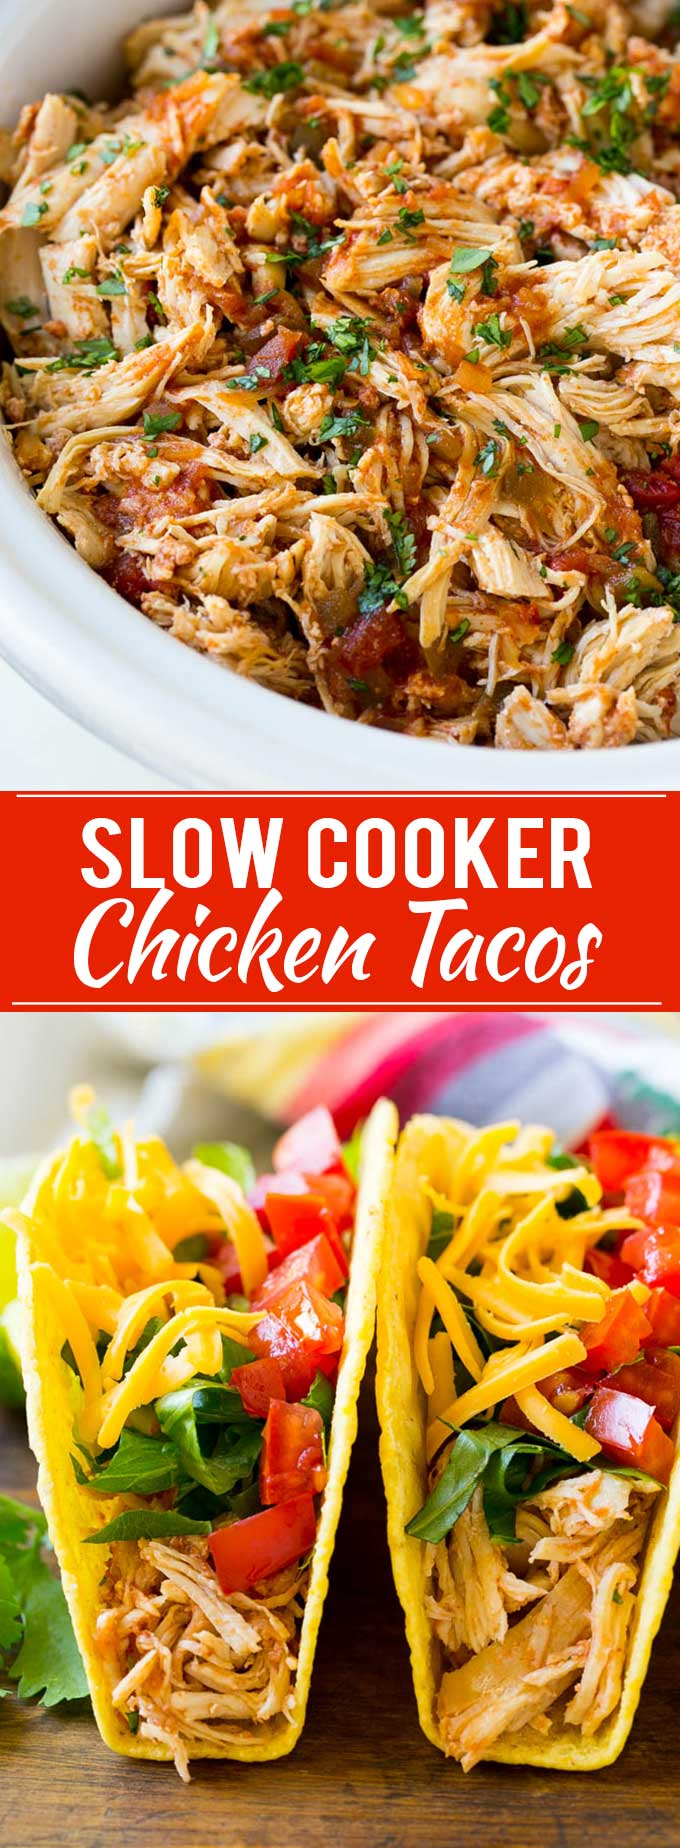 Slow Cooker Chicken Tacos Recipe | Shredded Chicken Tacos | Crispy Chicken Tacos